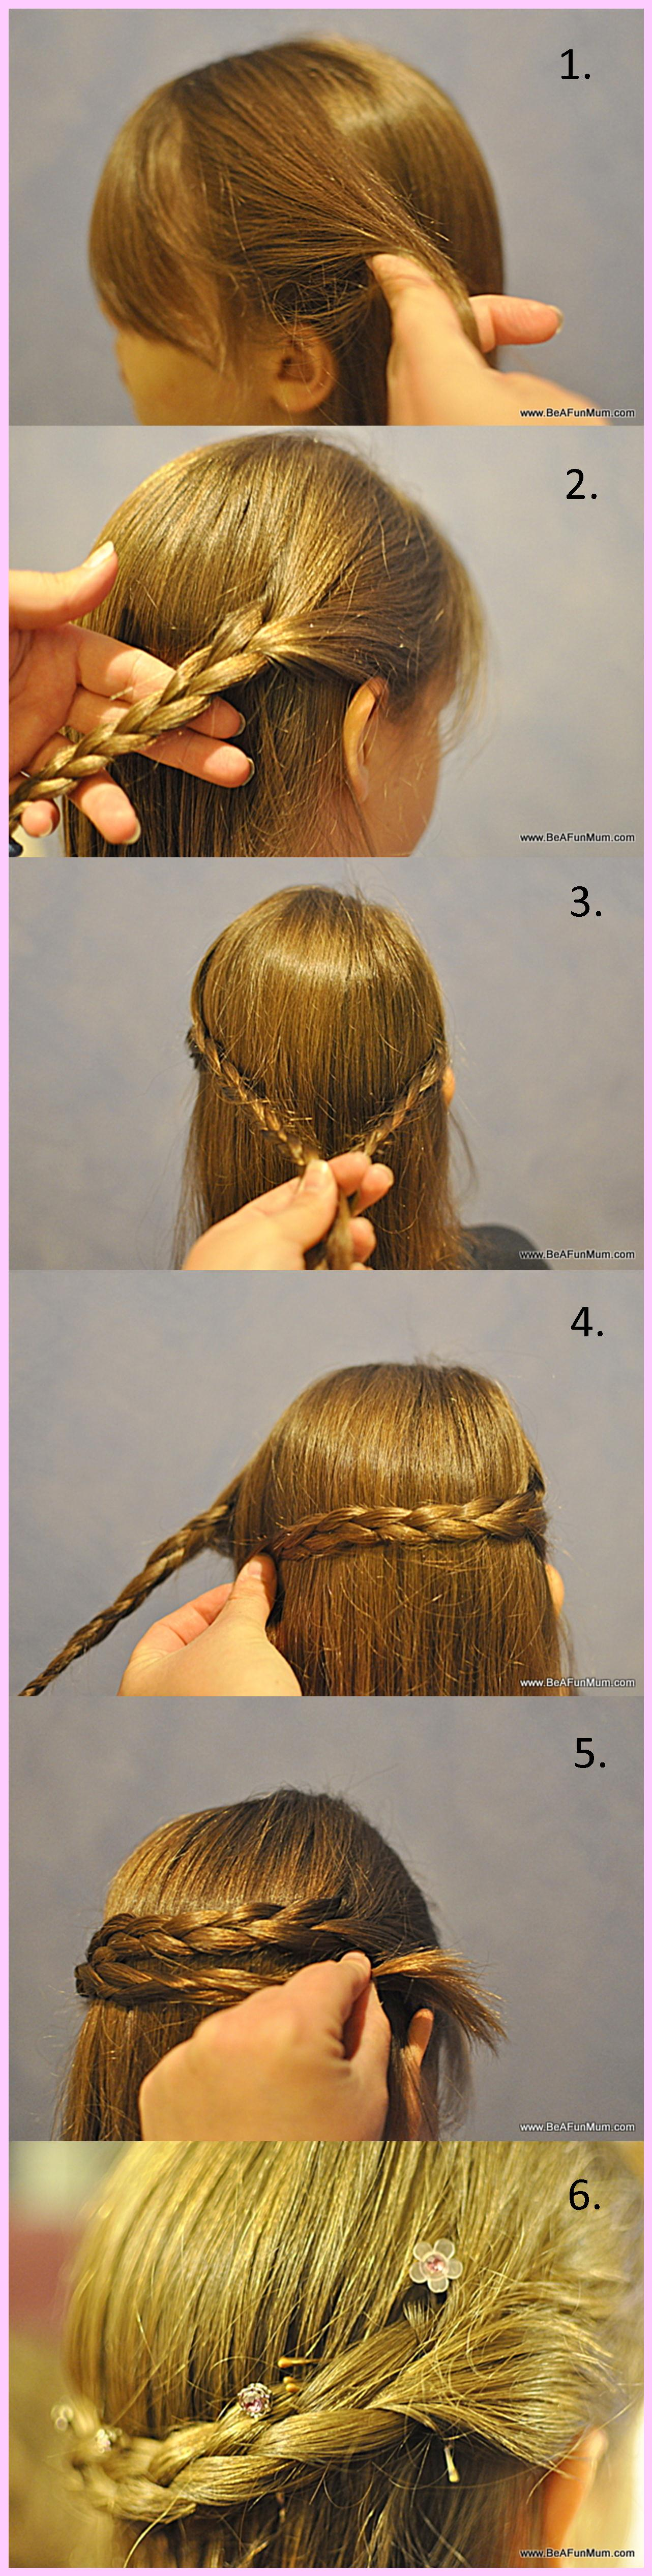 dakota fanning inspired hair tutorial from 2012 Met Ball